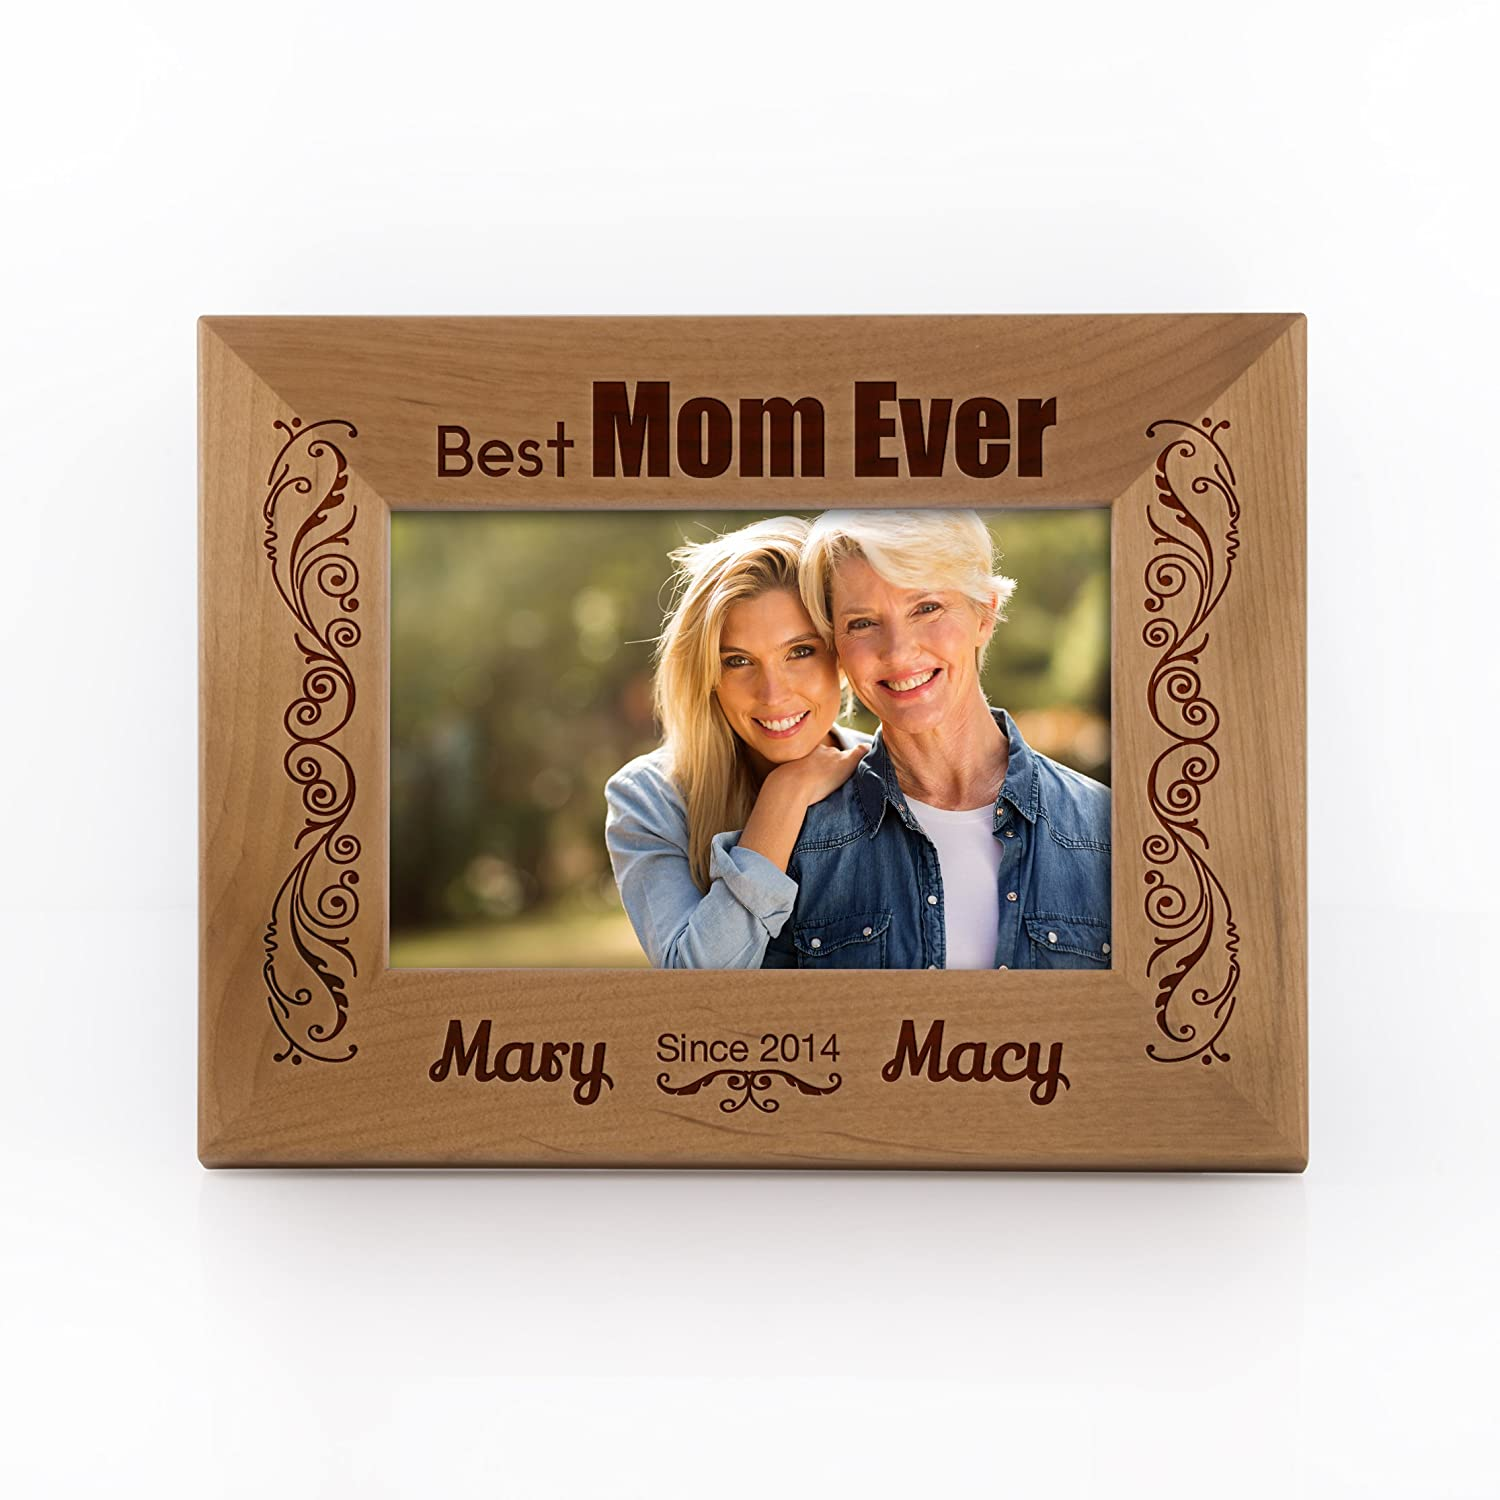 Amazoncom Personalized Picture Frame For Mom Best Mom Ever Since